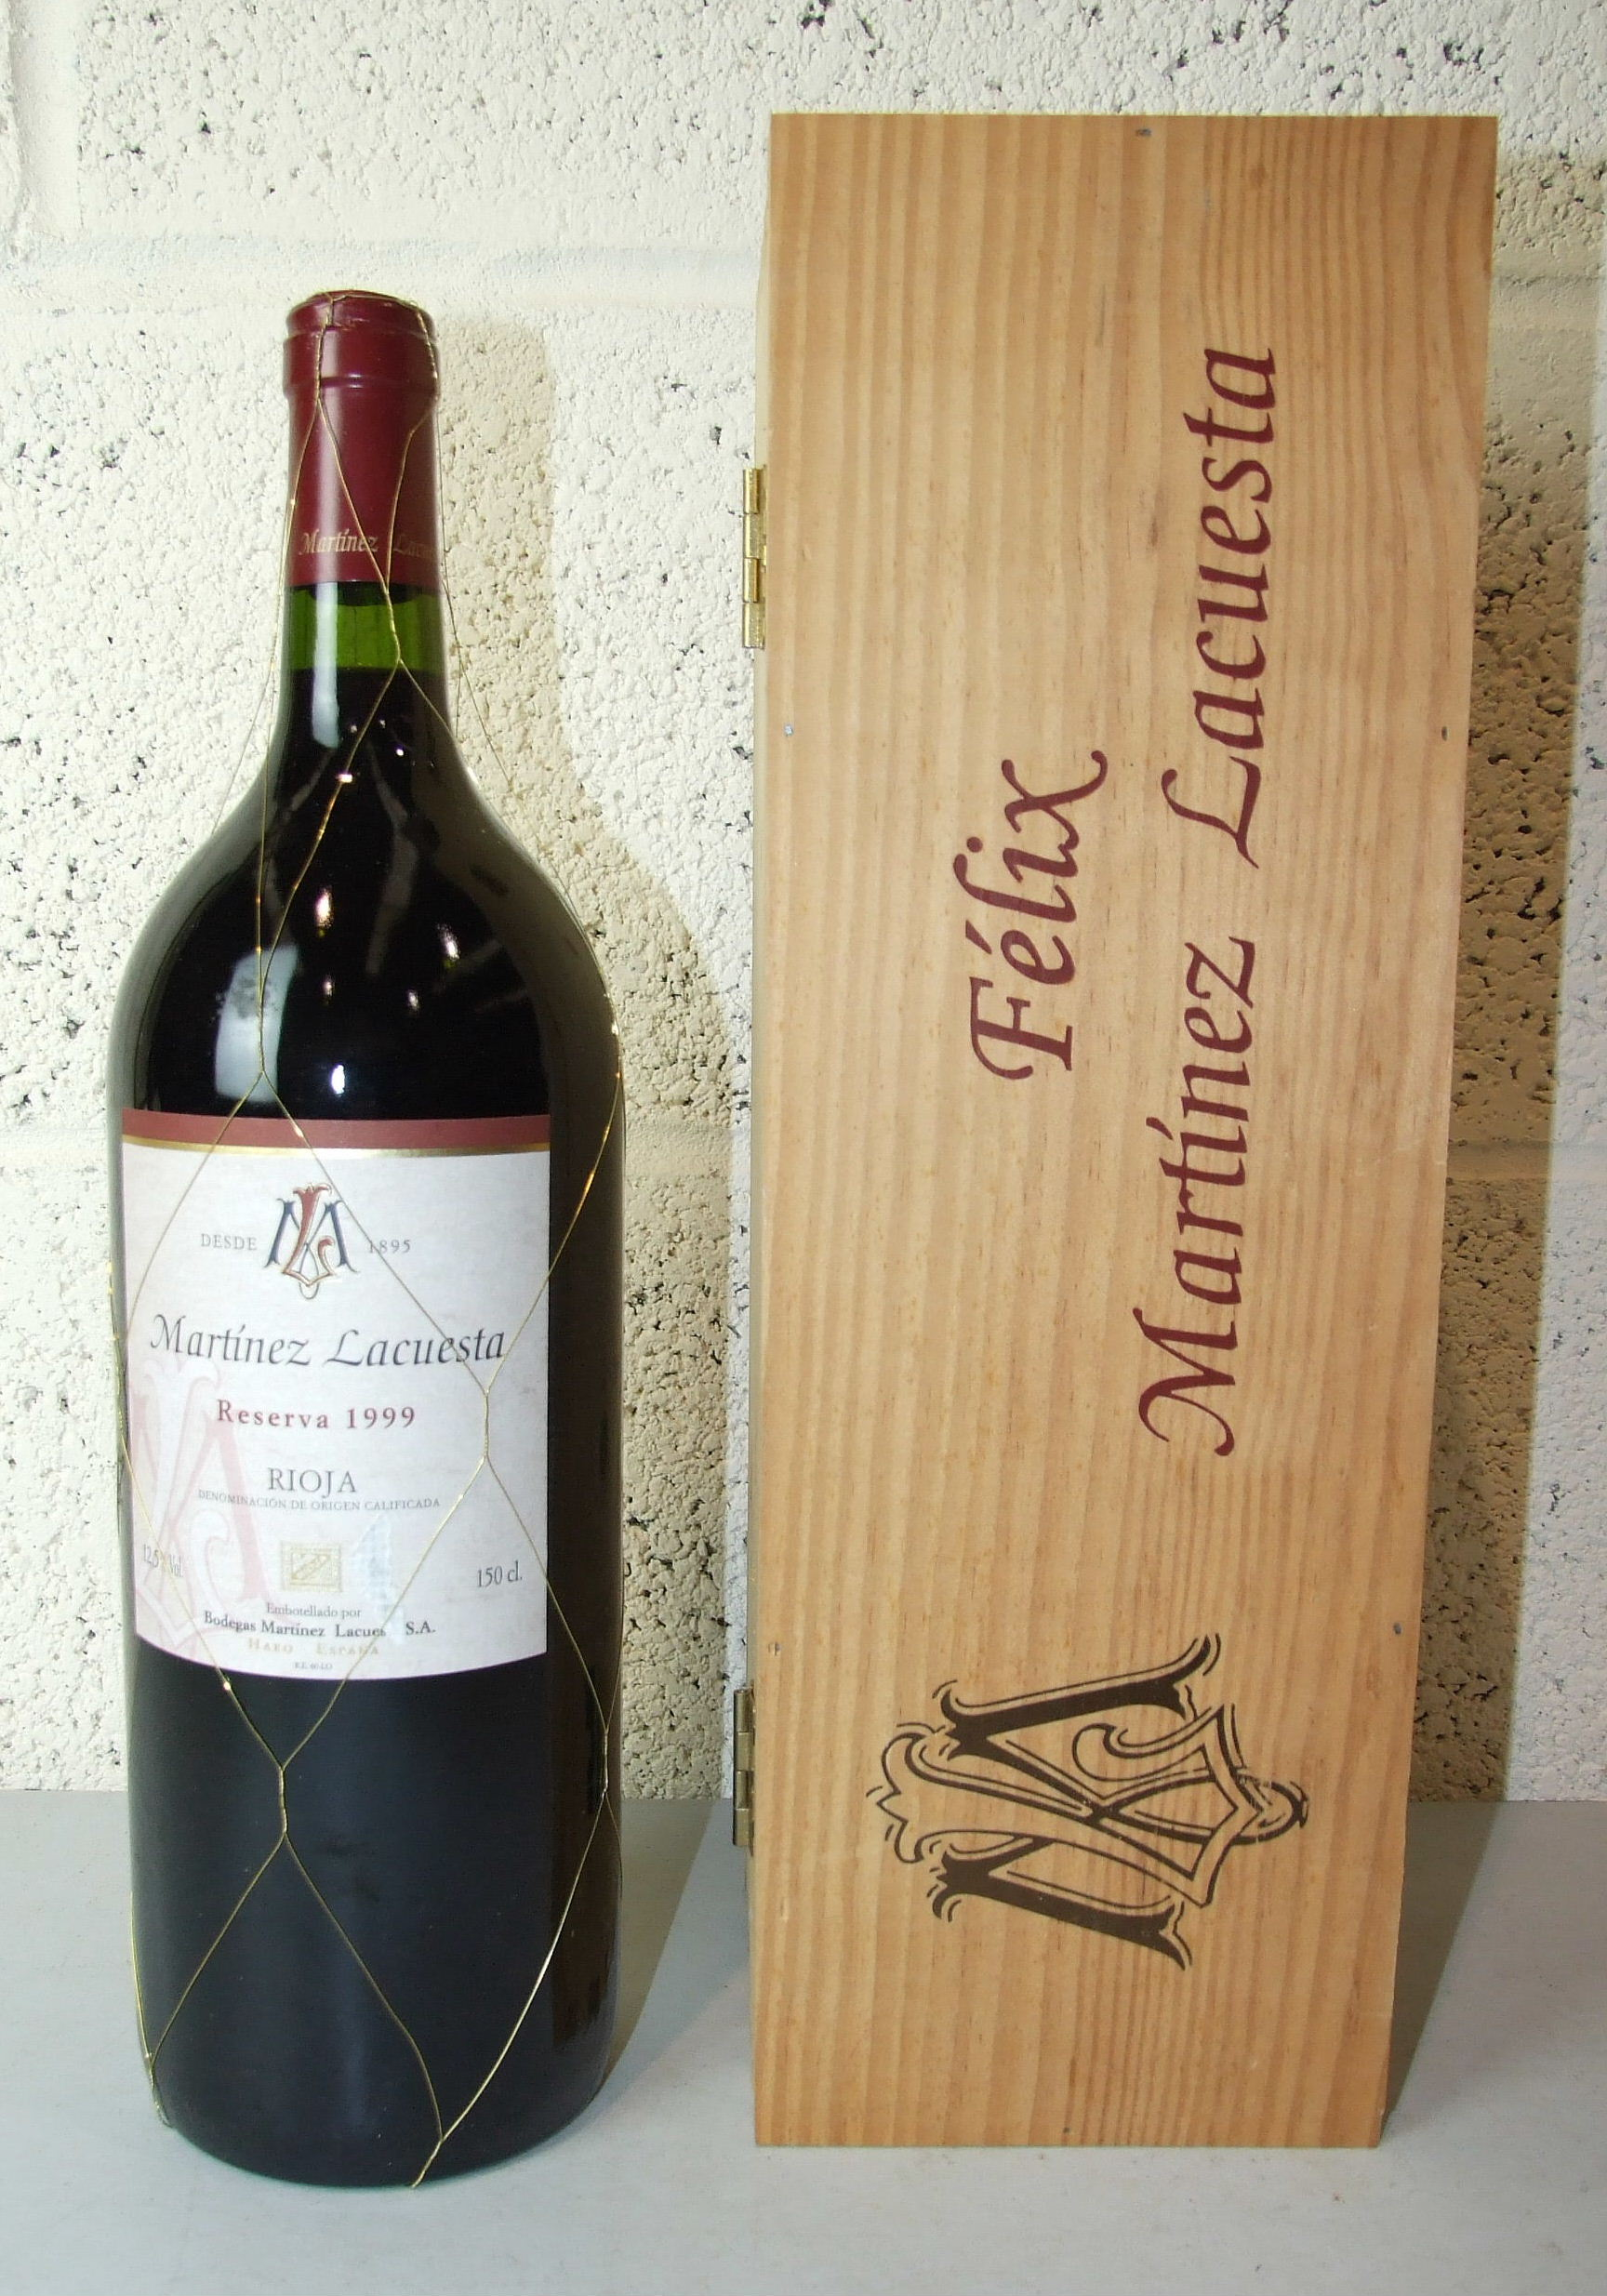 Lot 27 - Spain, Rioja Martinez Lacuesta Reserva 1999, one magnum, OWC, (1).